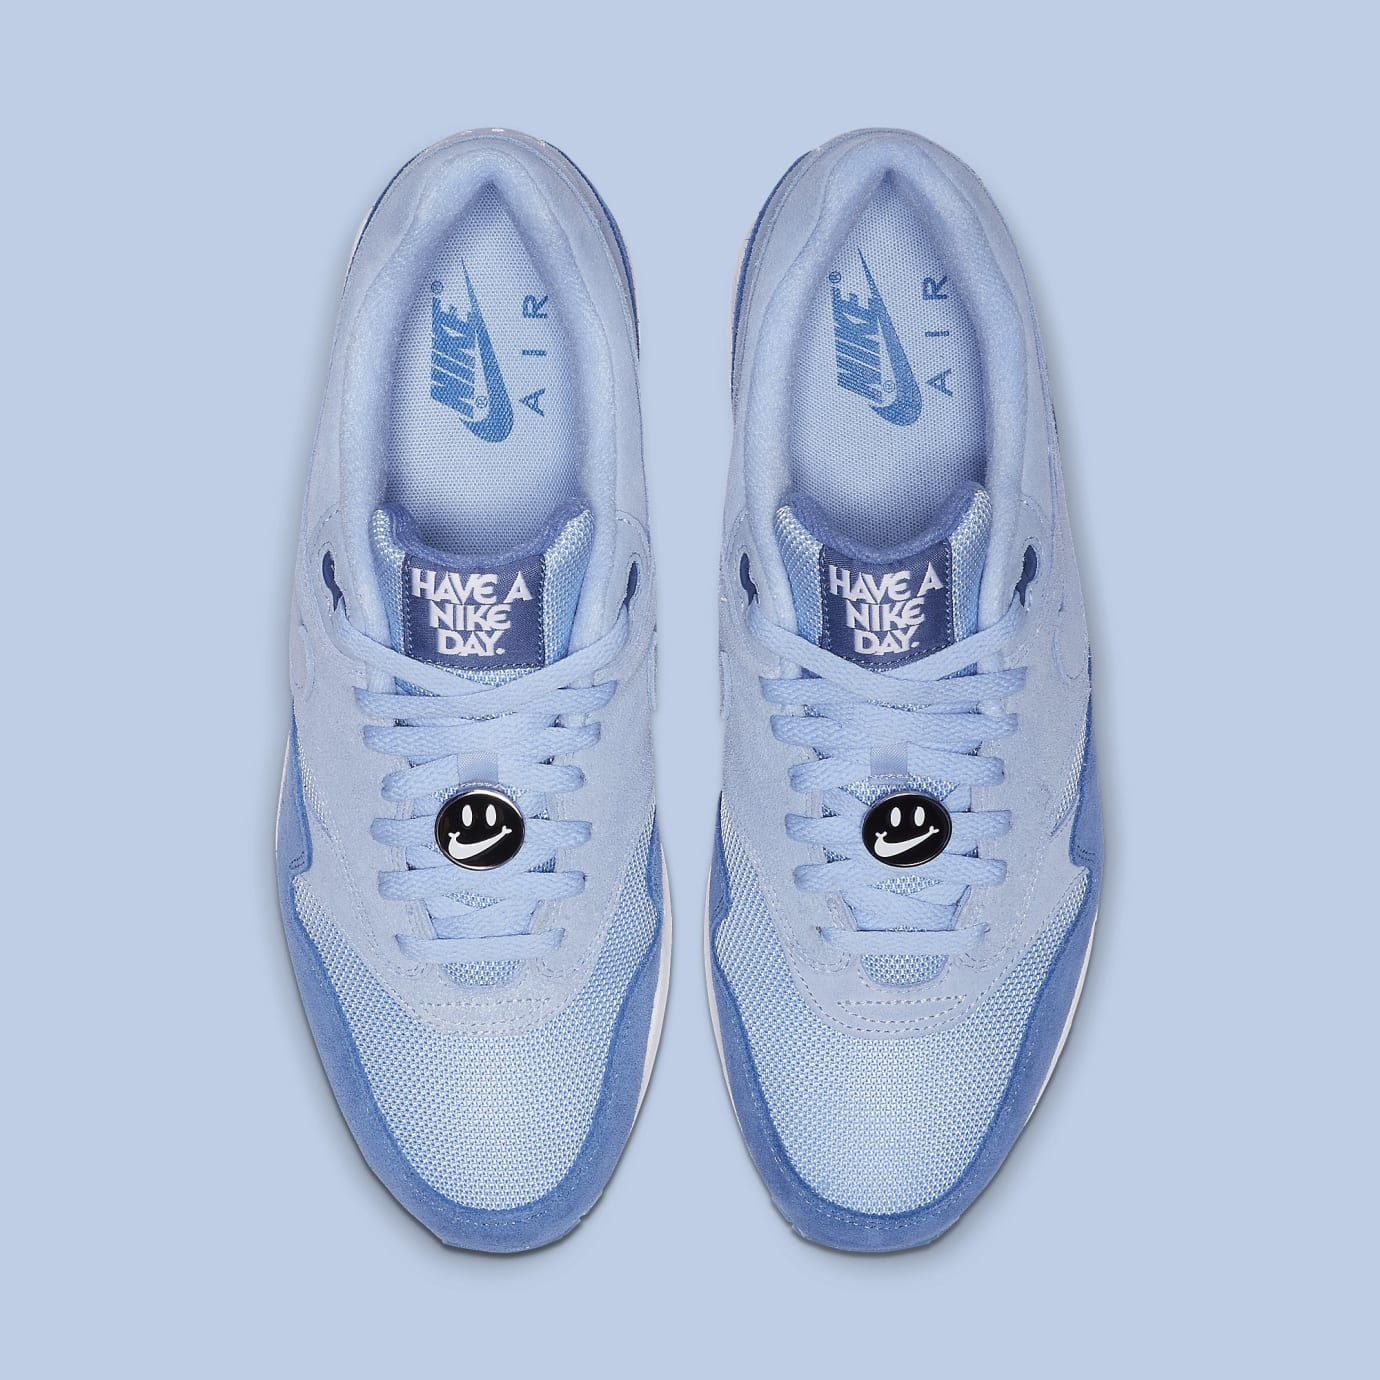 Nike Air Max 1 'Have a Nike Day' BQ8929-400 (Top)